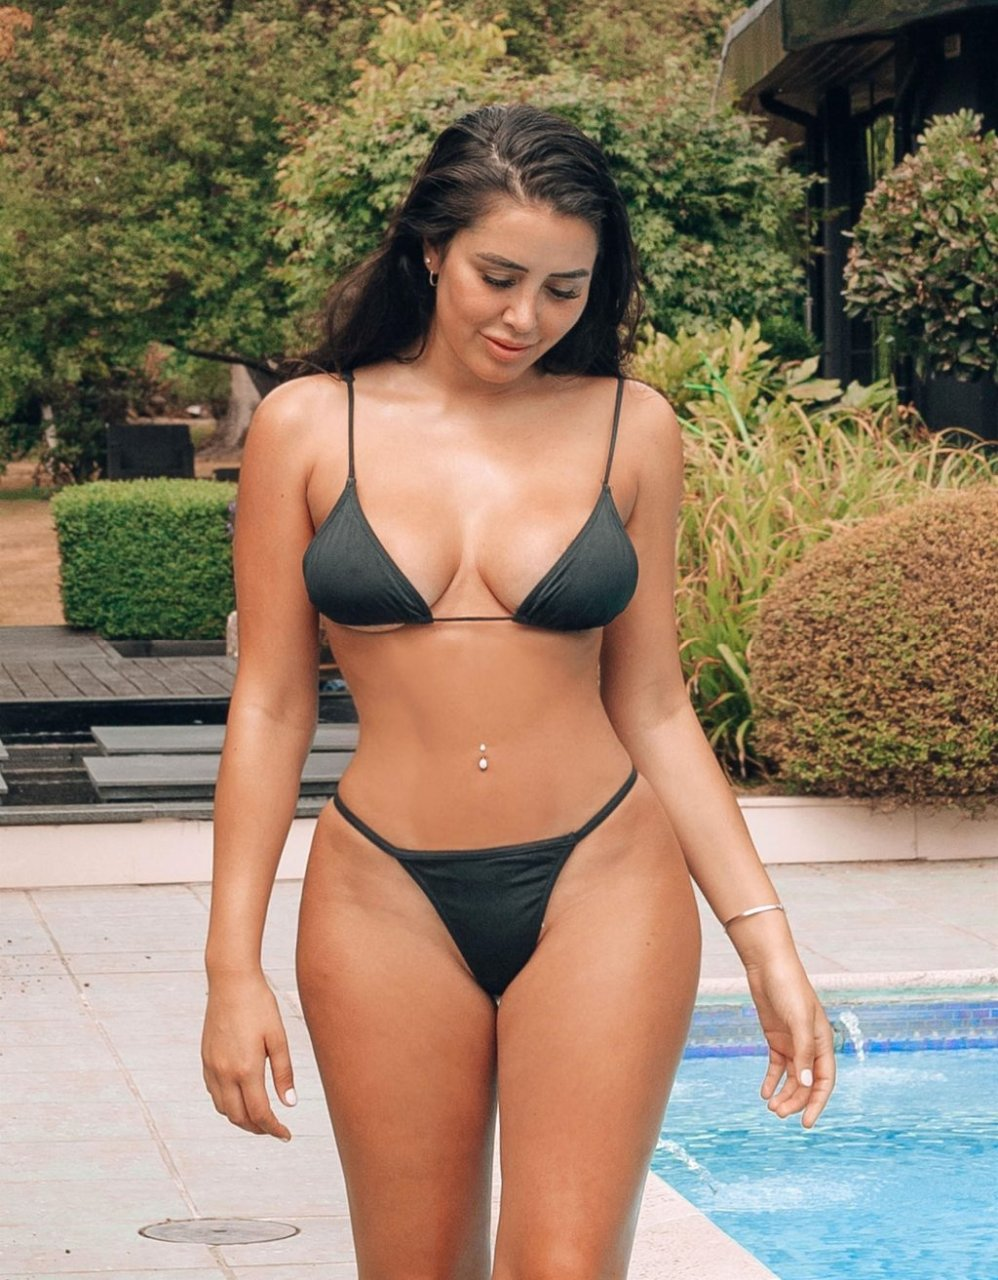 Geordie Shore Naked Pictures marnie simpson nude photos and videos | #thefappening